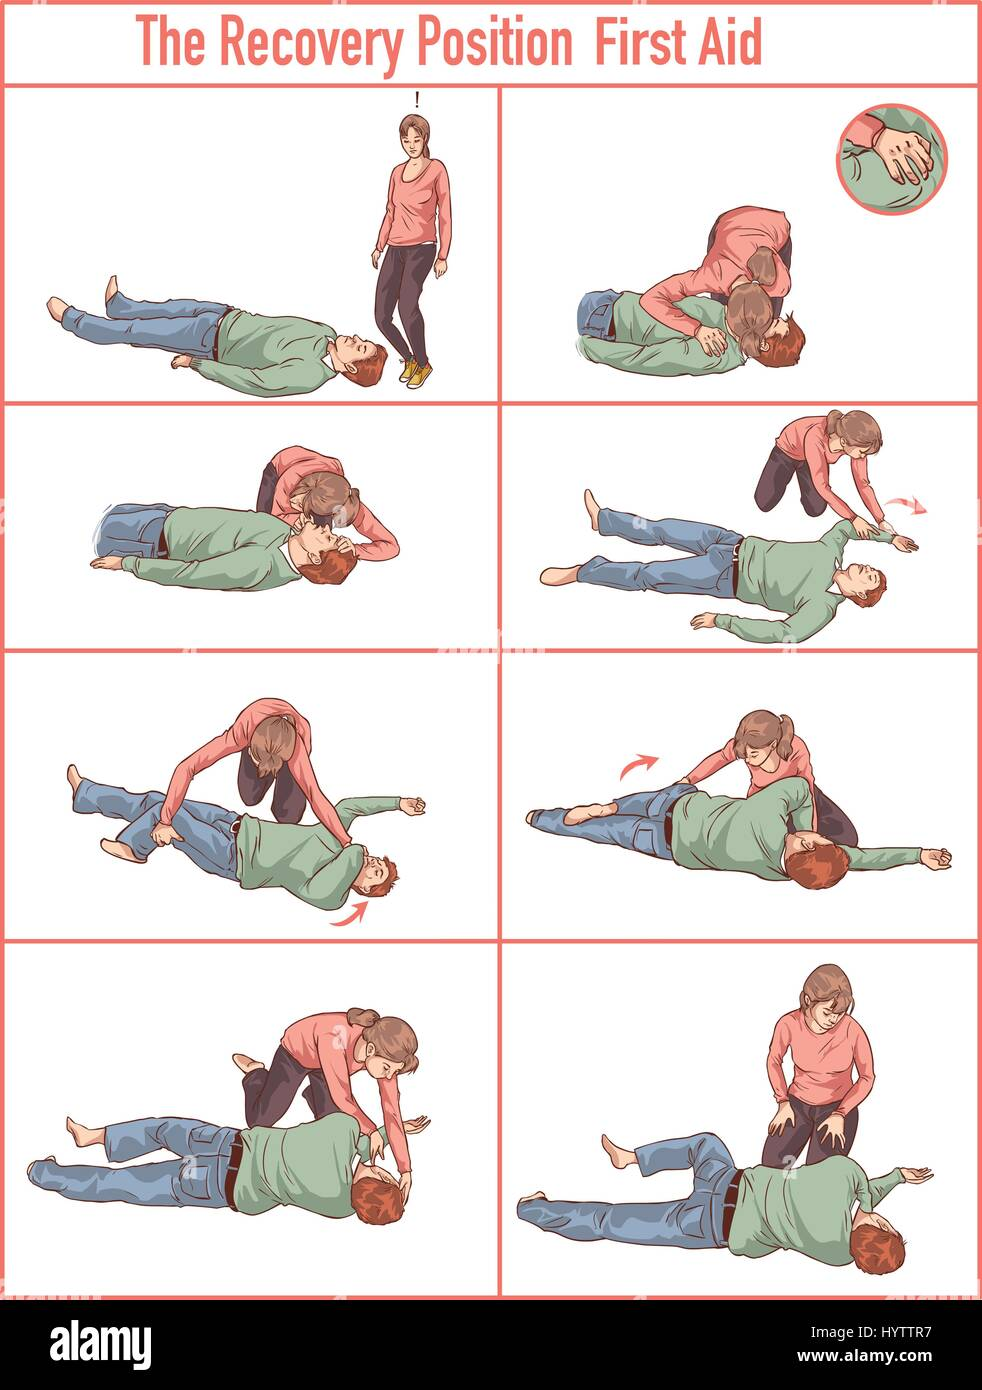 vector illlustration of a Recovery position (first aid) - Stock Image